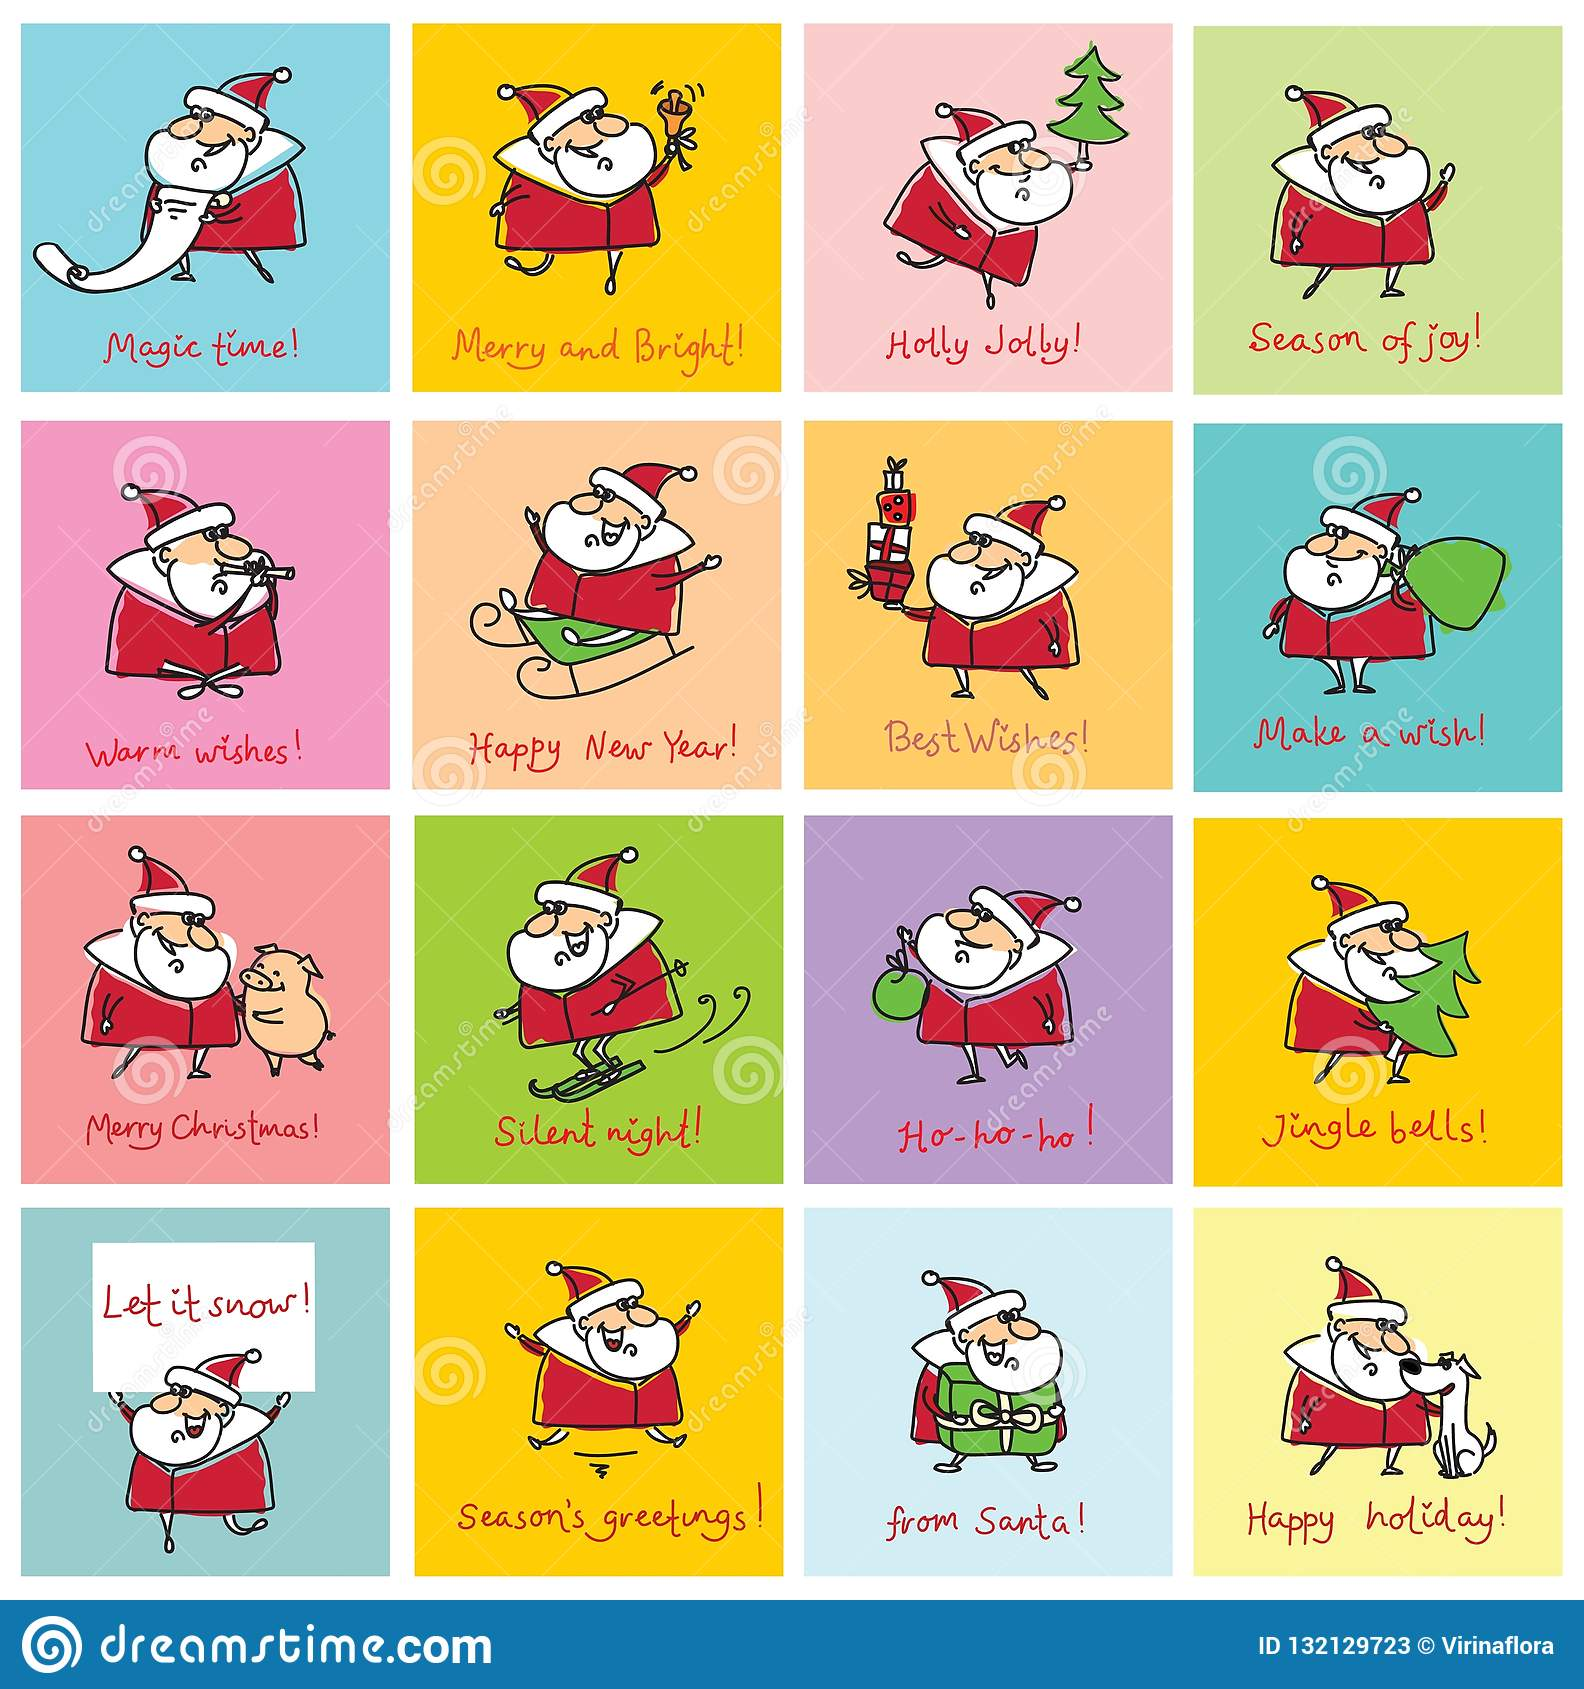 Christmas Card Quotes.Christmas Greeting Cards With Santa Clauses Stock Vector